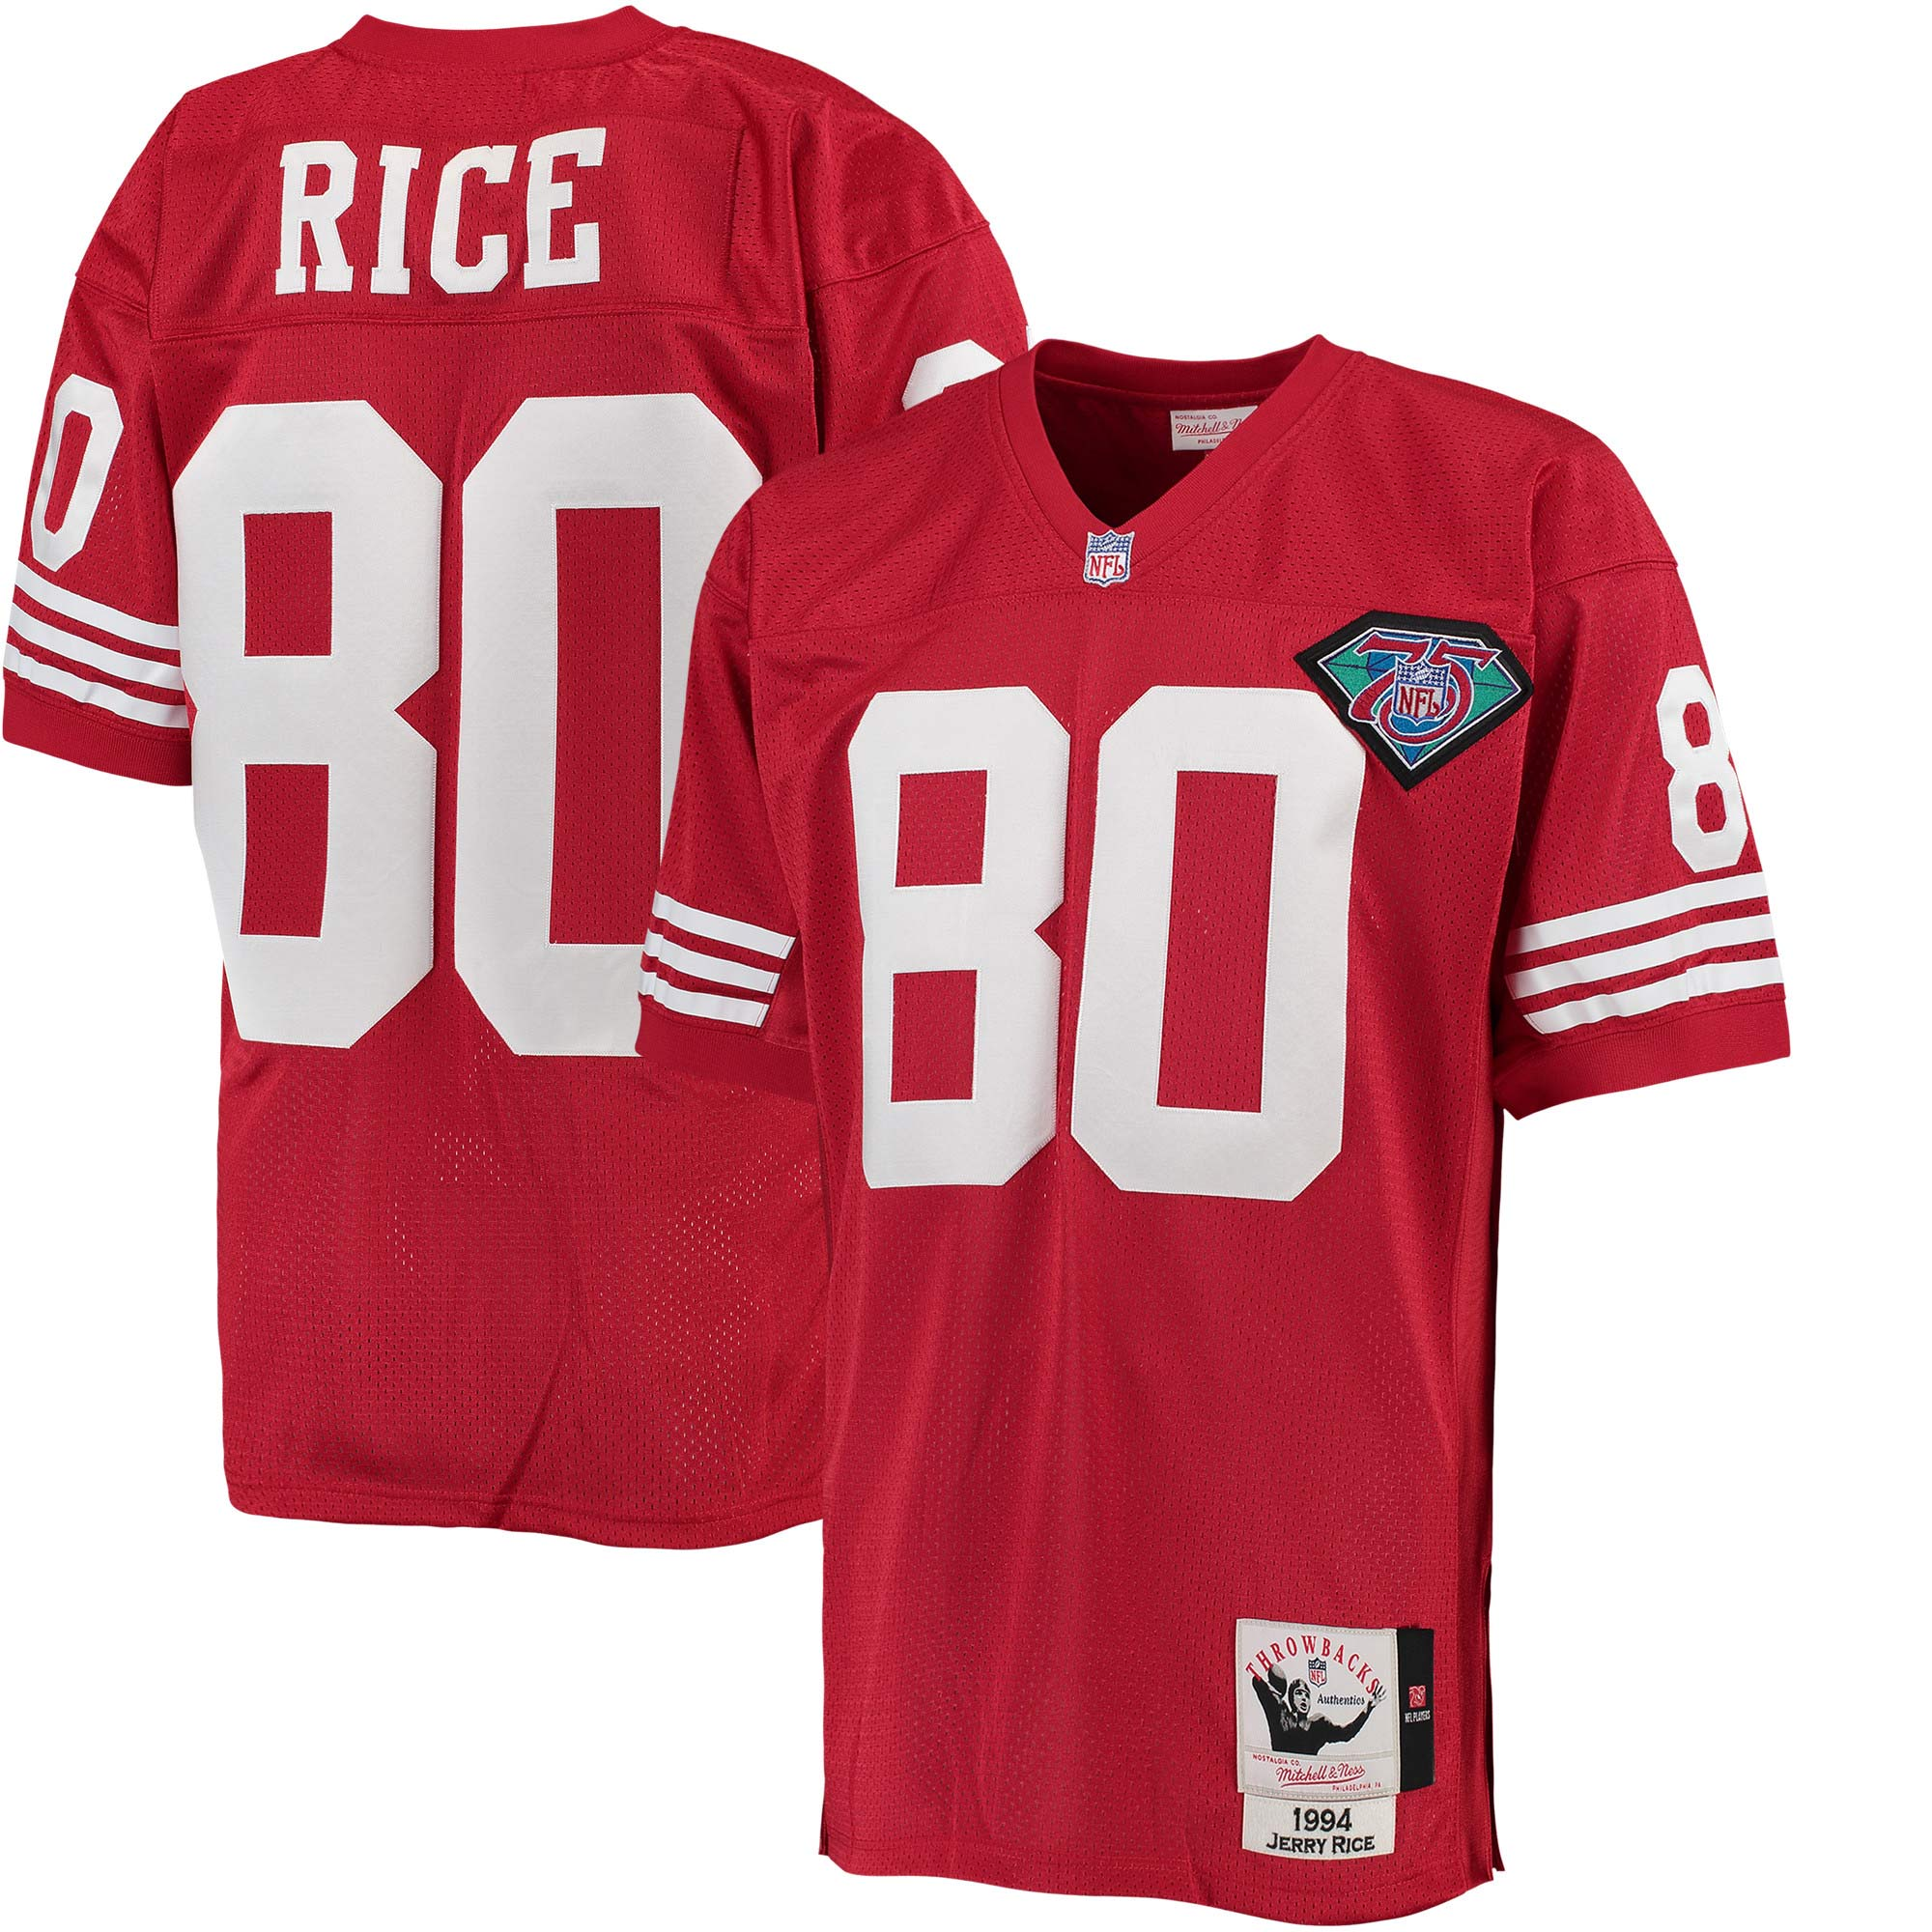 Jerry Rice San Francisco 49ers Mitchell & Ness 1994 Authentic Throwback Jersey - Scarlet